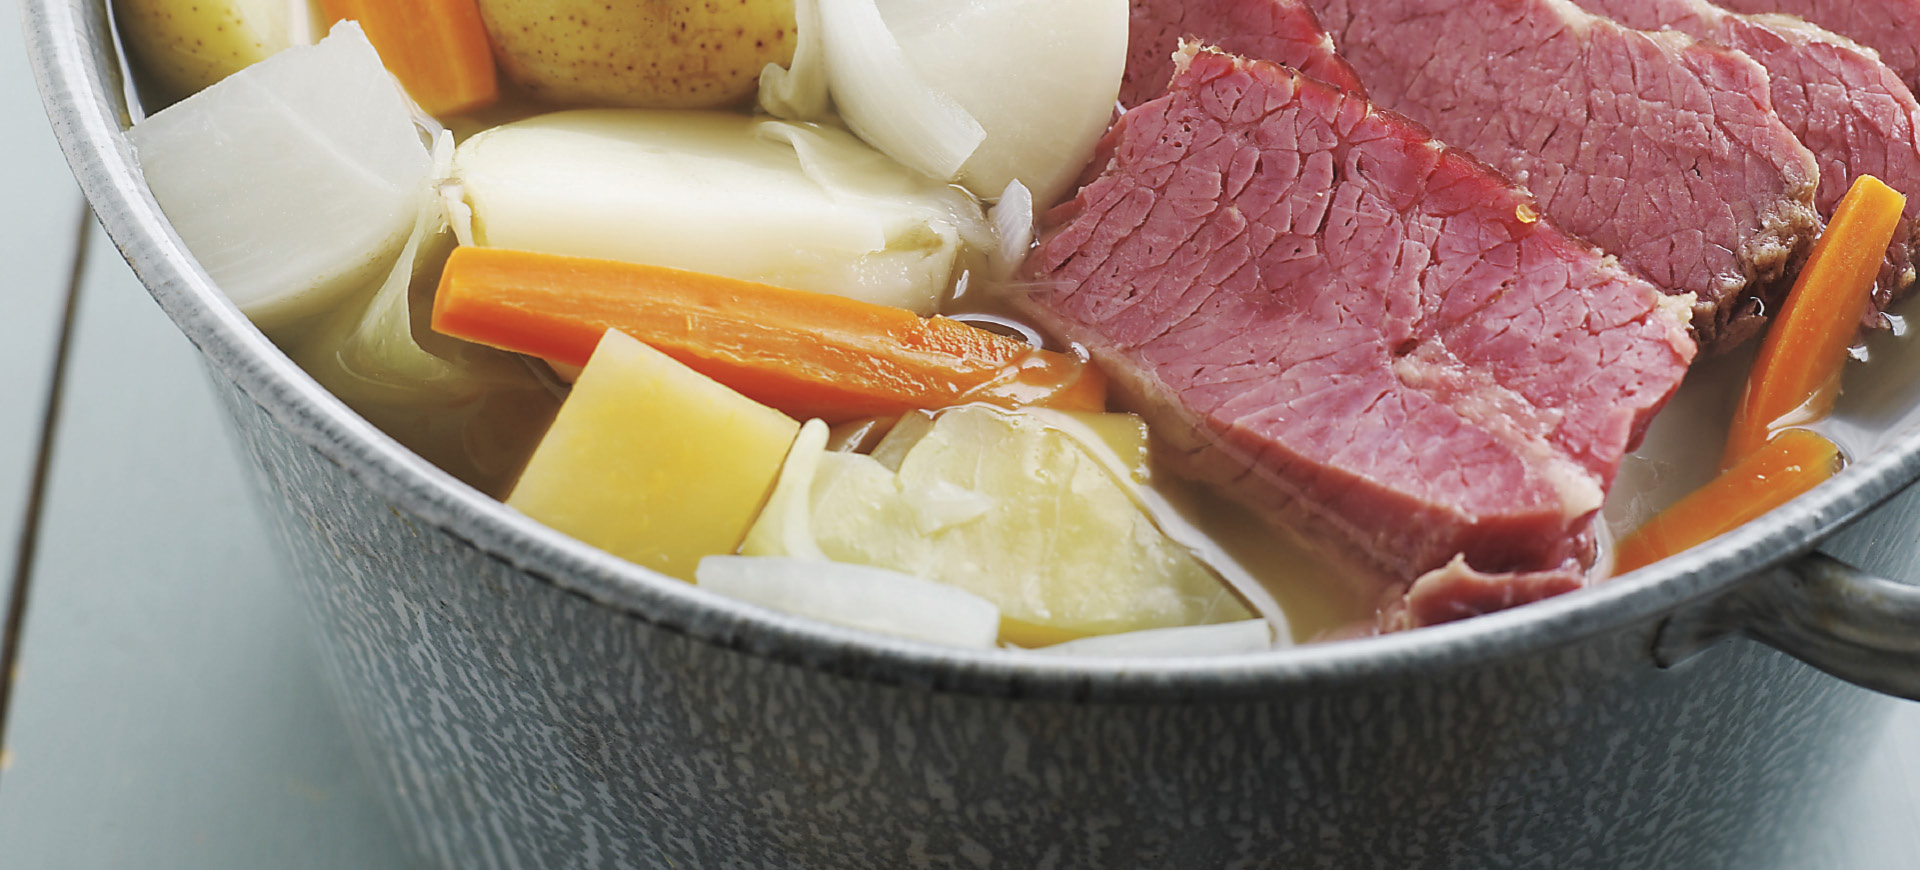 Brown Sugar and Mustard Glazed Corned Beef with Vegetables